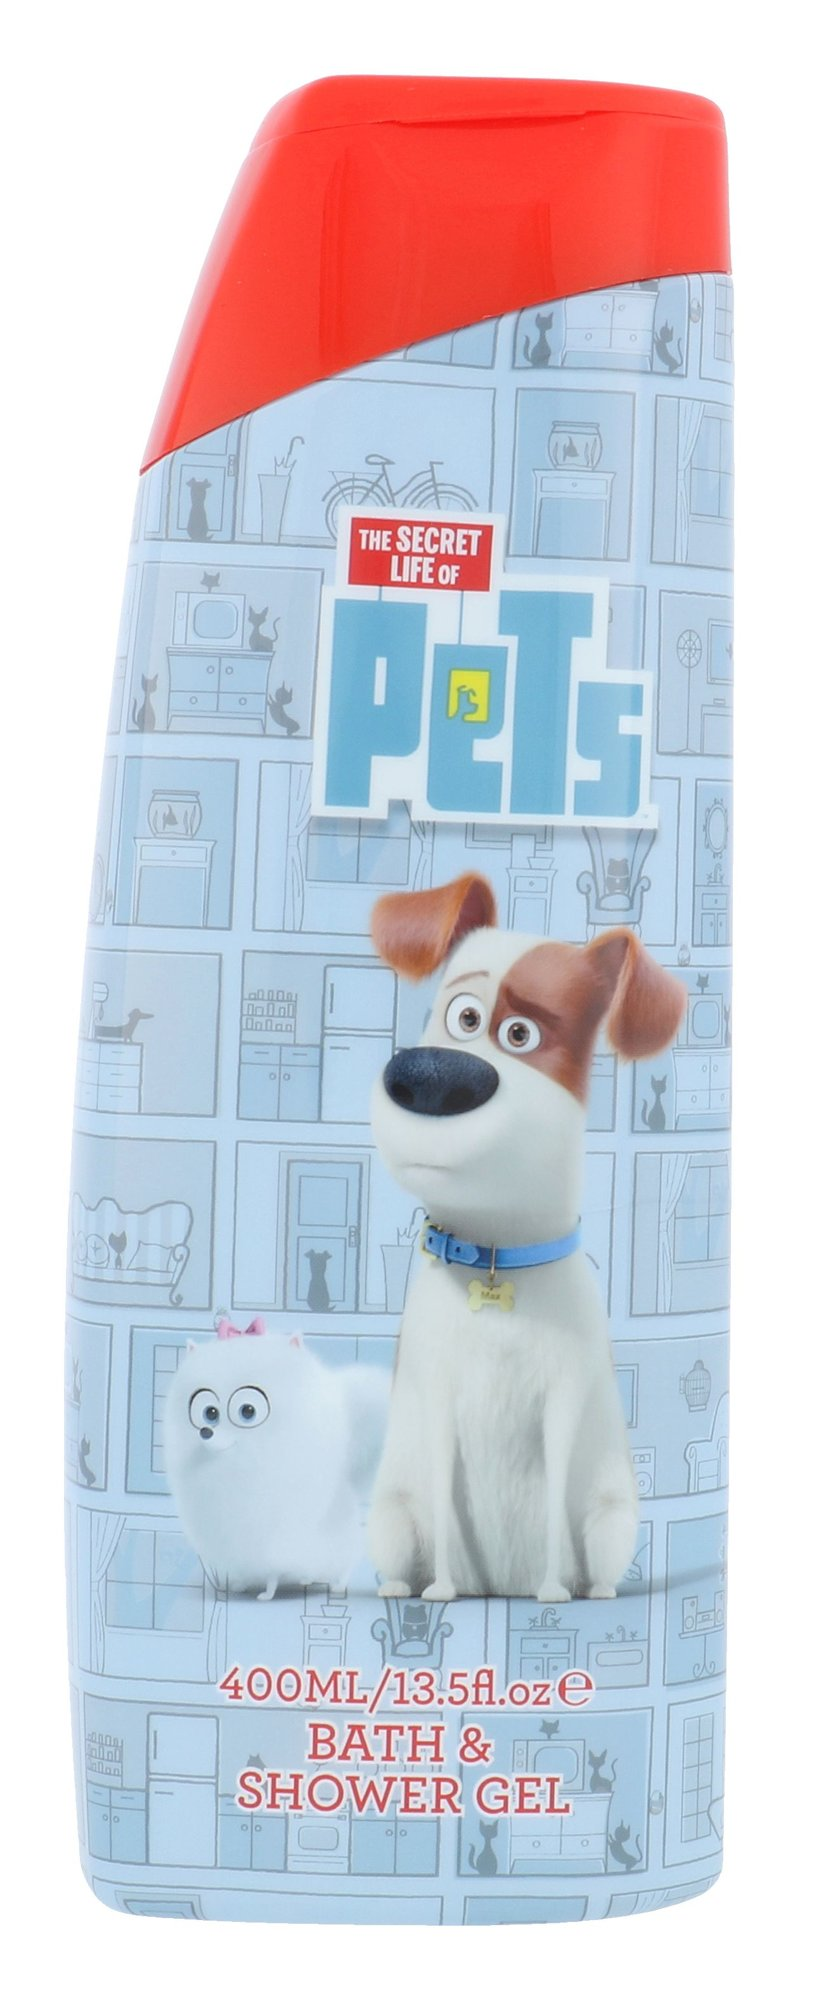 Universal The Secret Life Of Pets Bath & Shower Gel Cosmetic 400ml